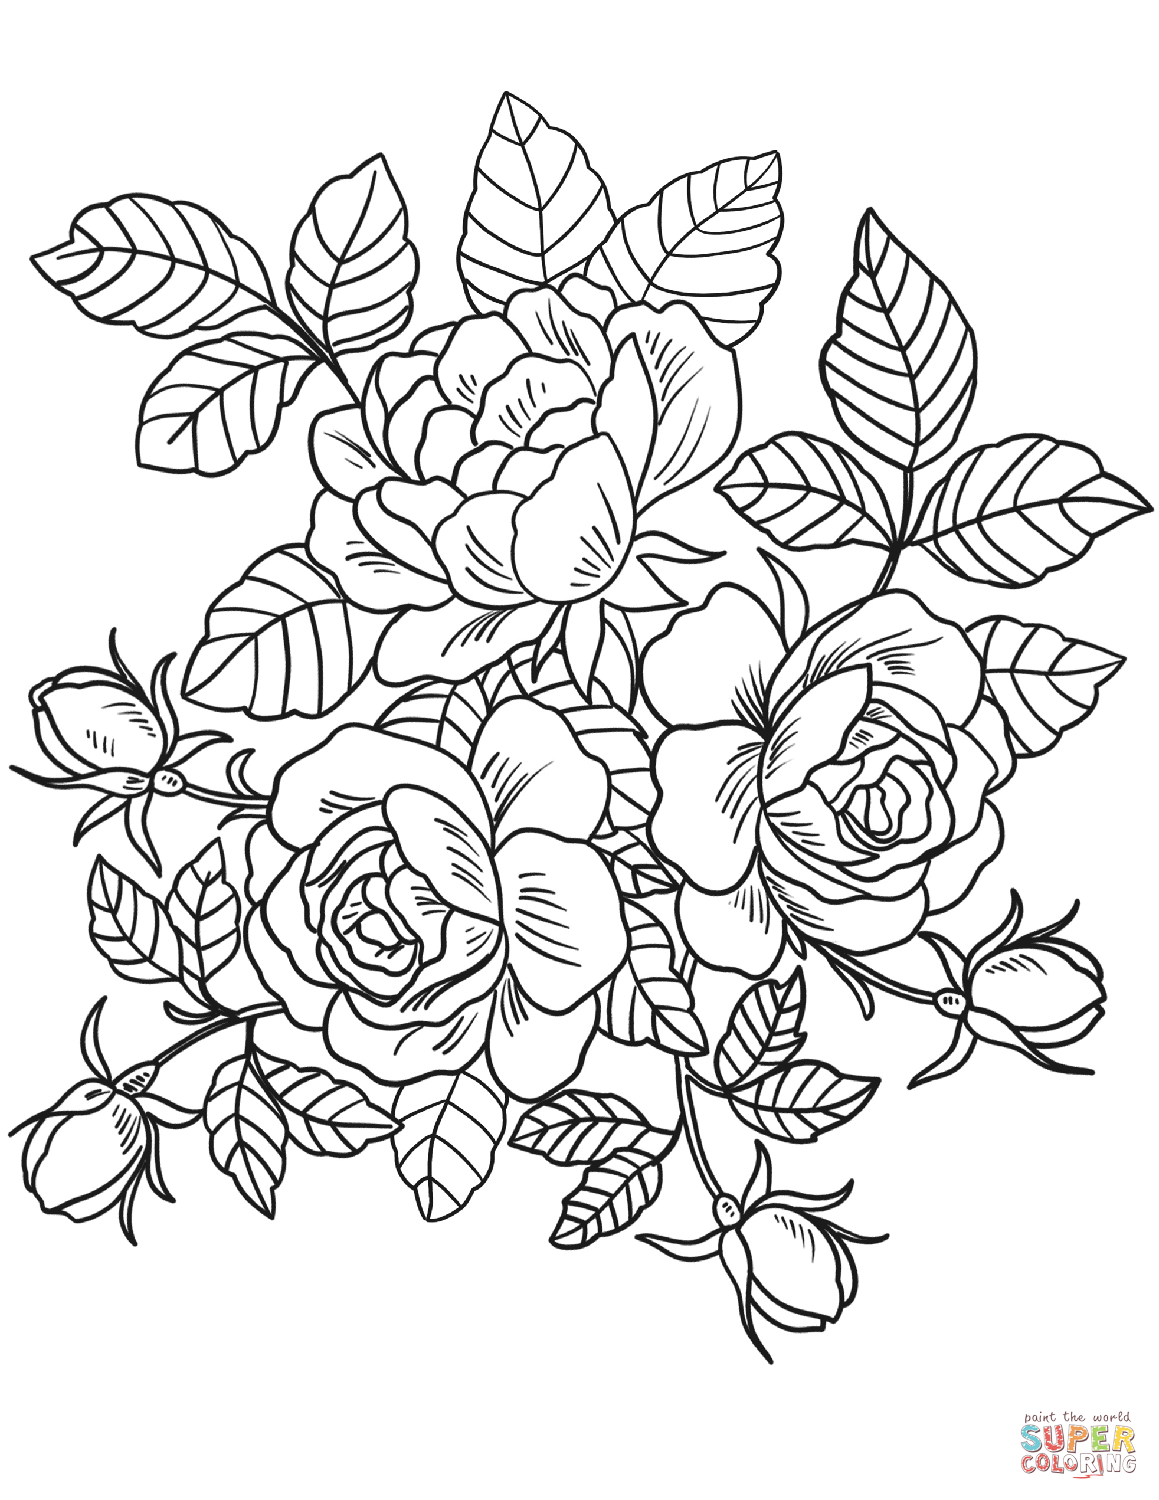 Excellent Ideas Coloring Page Flowers Bookmontenegromemediaroses